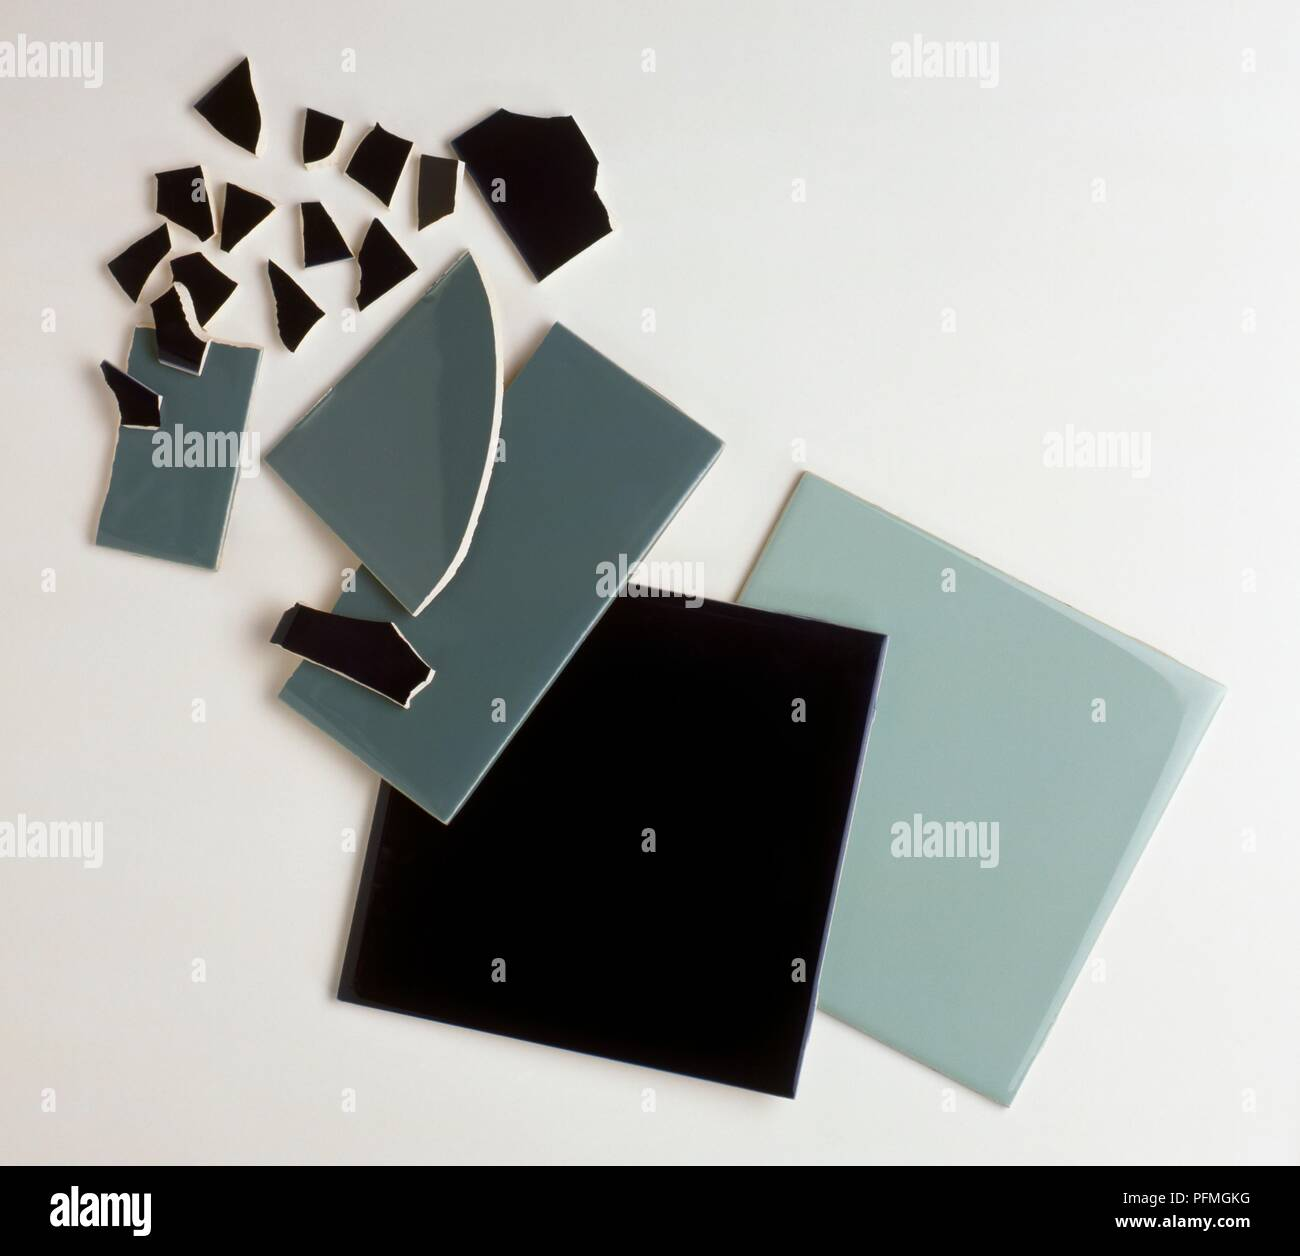 Black and grey tiles and tile fragments to be used in mosaic - Stock Image